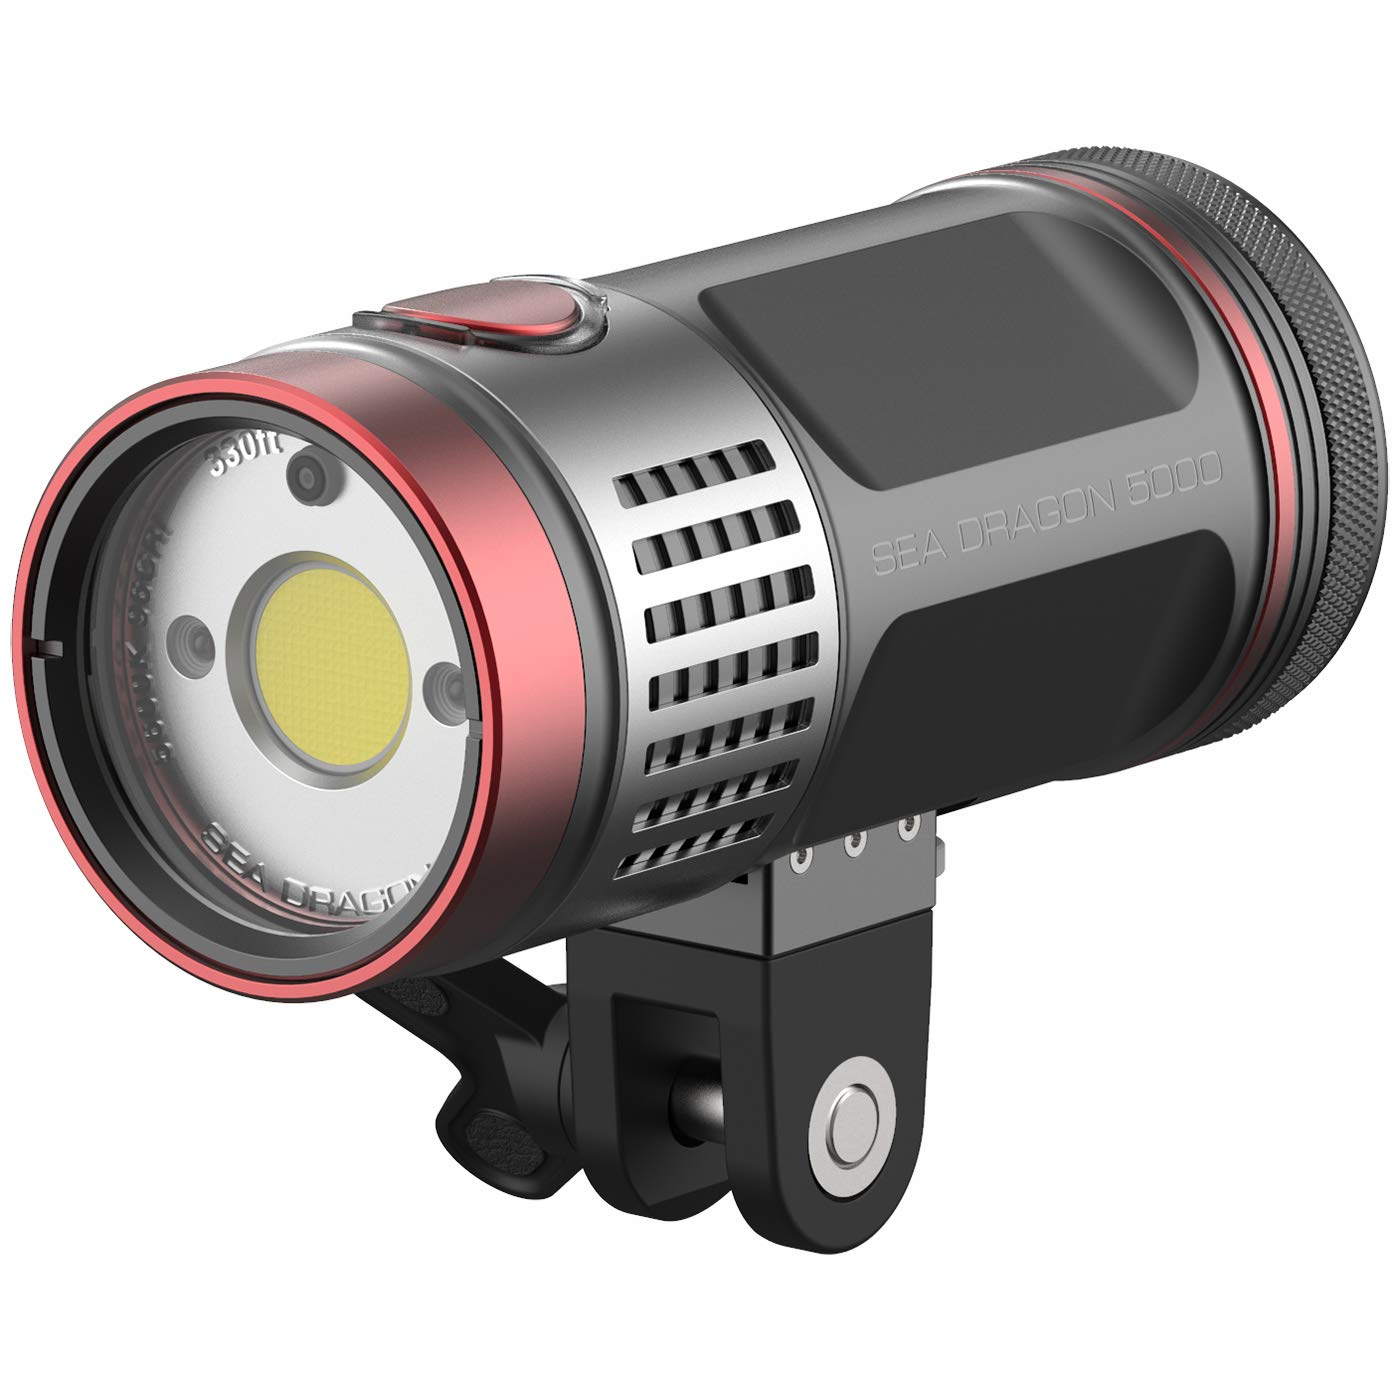 SeaLife Sea Dragon 5000F Photo/Video Dive Light with YS Adapter, Ball Joint Mount & Case (SL676)